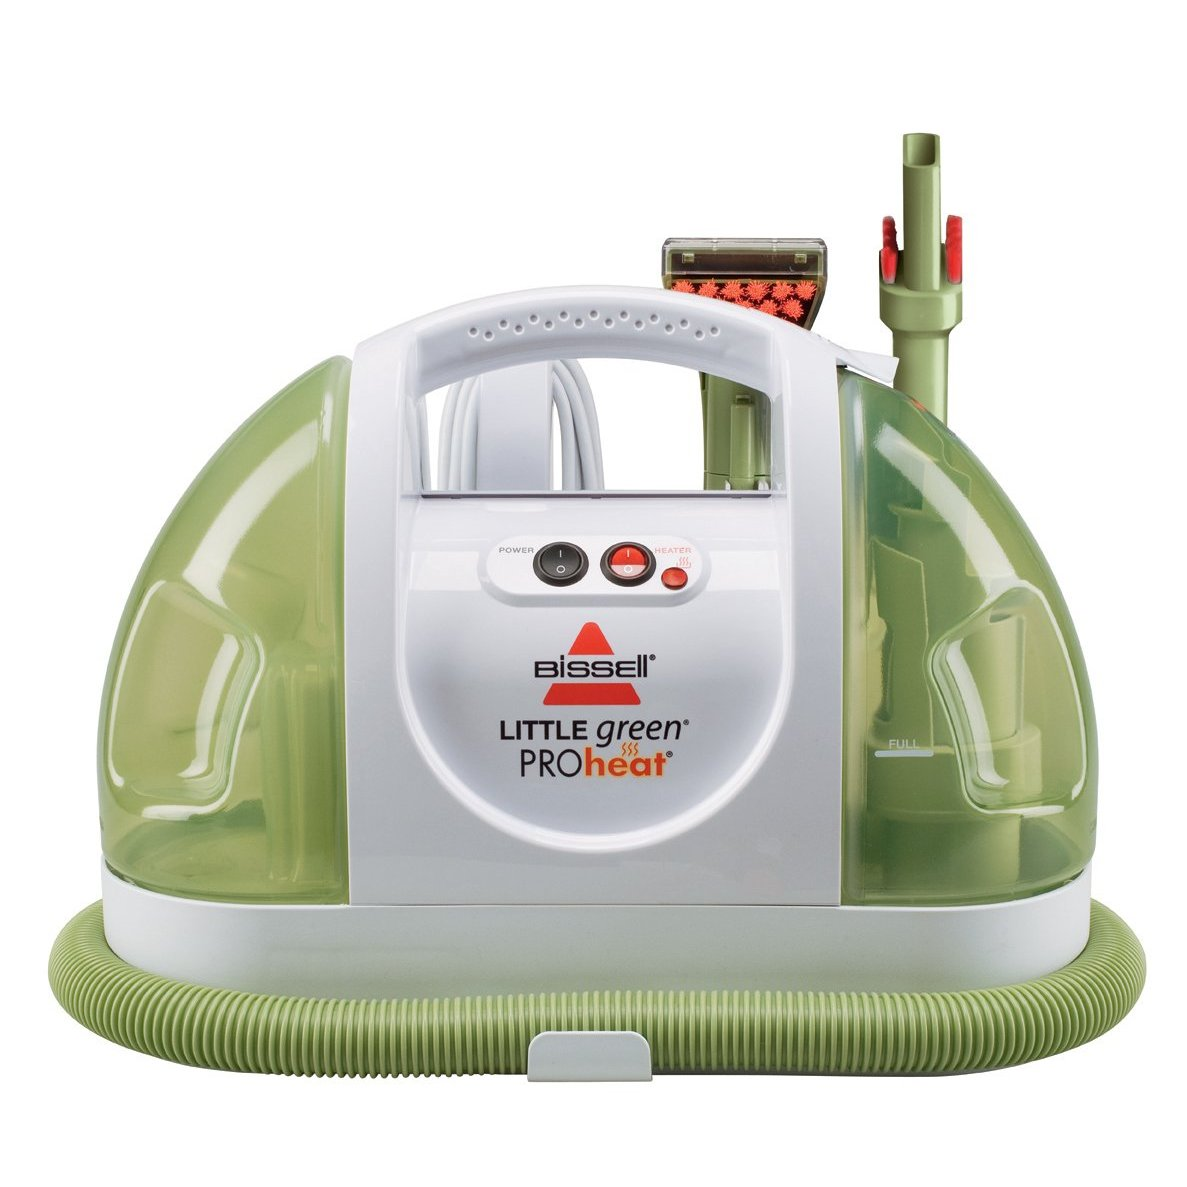 Mj S Product Reviews Bissell Little Green Proheat Compact